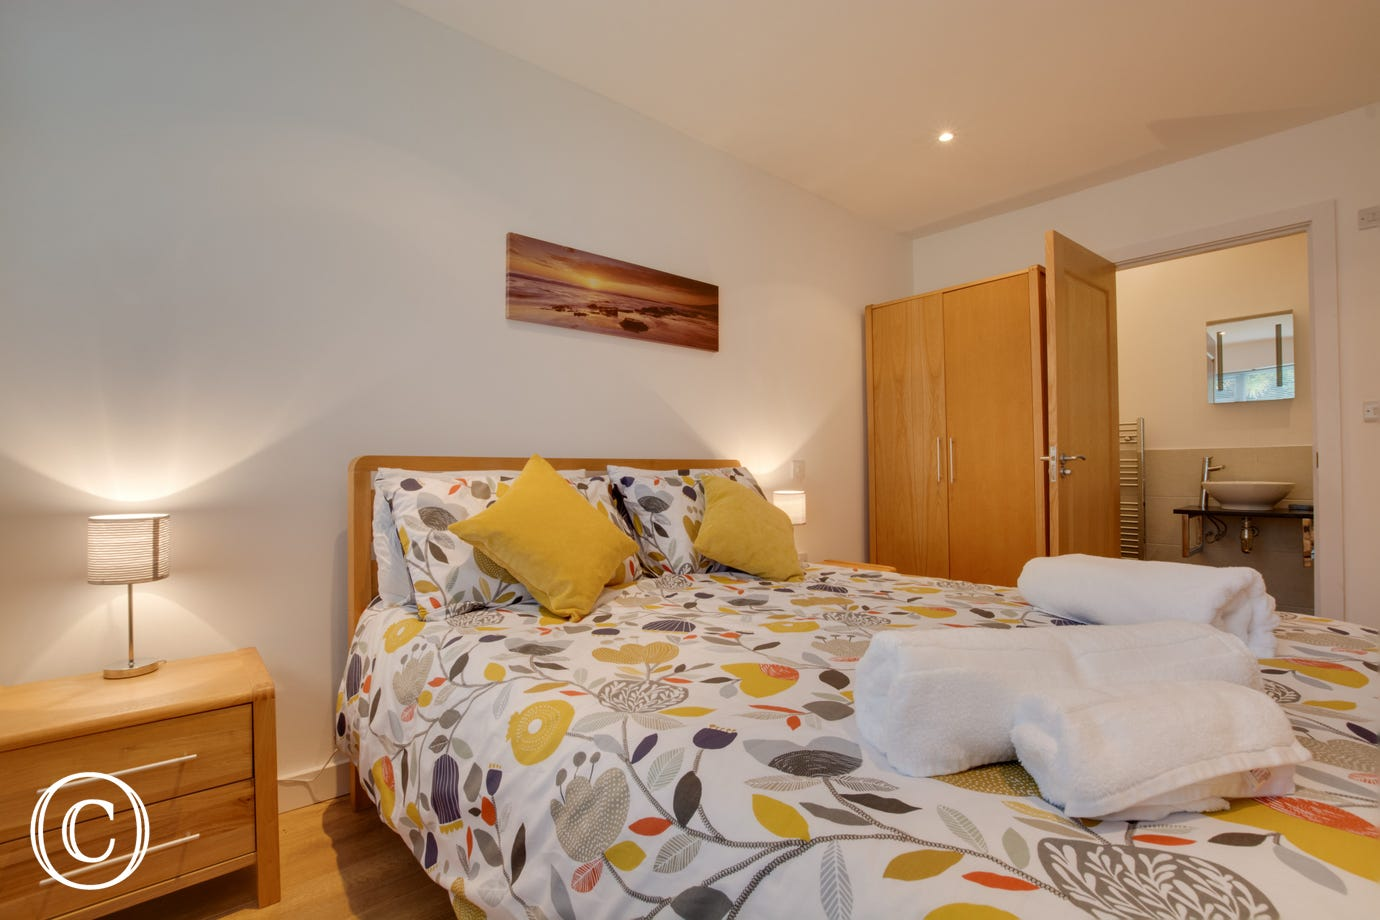 Saundersfoot holiday accommodation for 5. Double bedroom